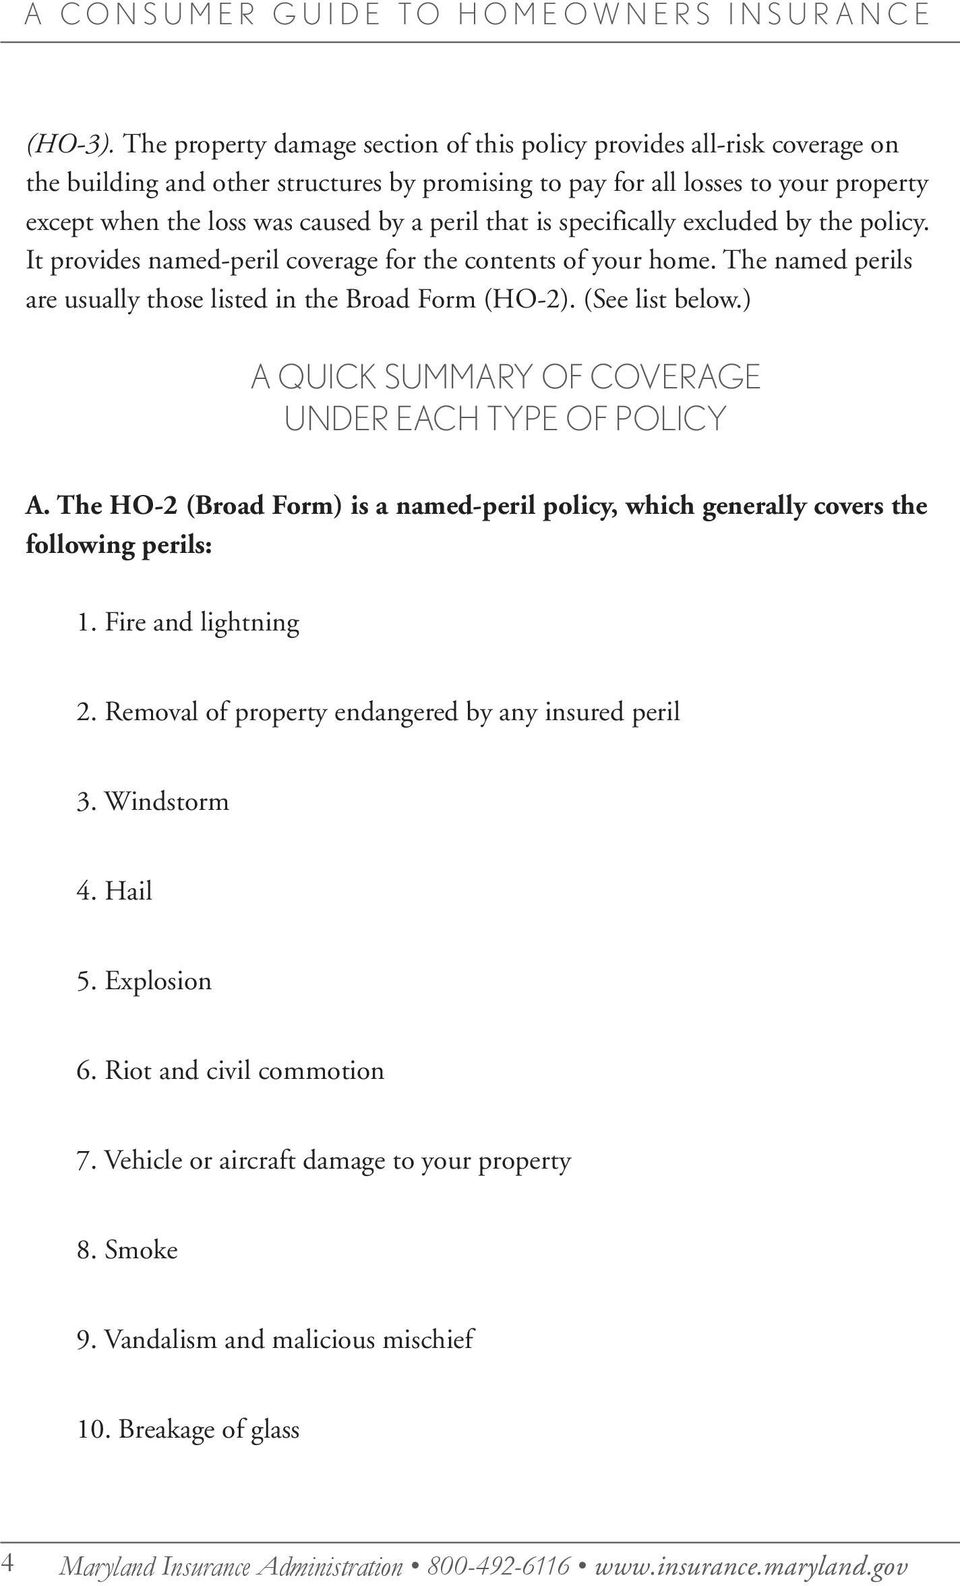 peril that is specifically excluded by the policy. It provides named-peril coverage for the contents of your home. The named perils are usually those listed in the Broad Form (HO-2). (See list below.